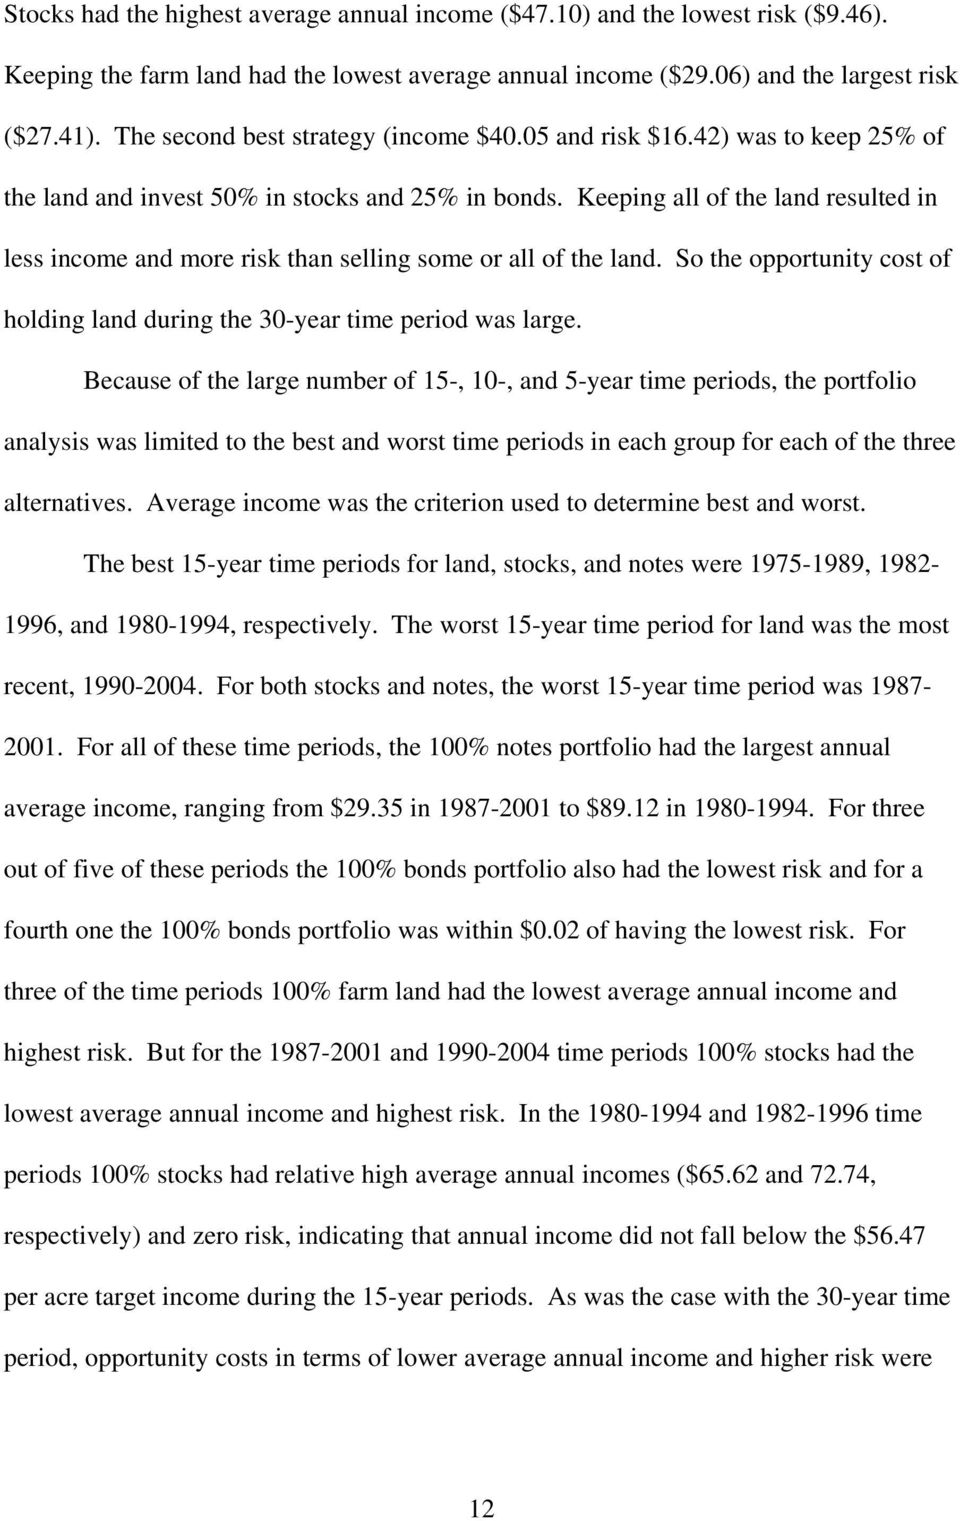 Keeping all of the land resulted in less income and more risk than selling some or all of the land. So the opportunity cost of holding land during the 30-year time period was large.